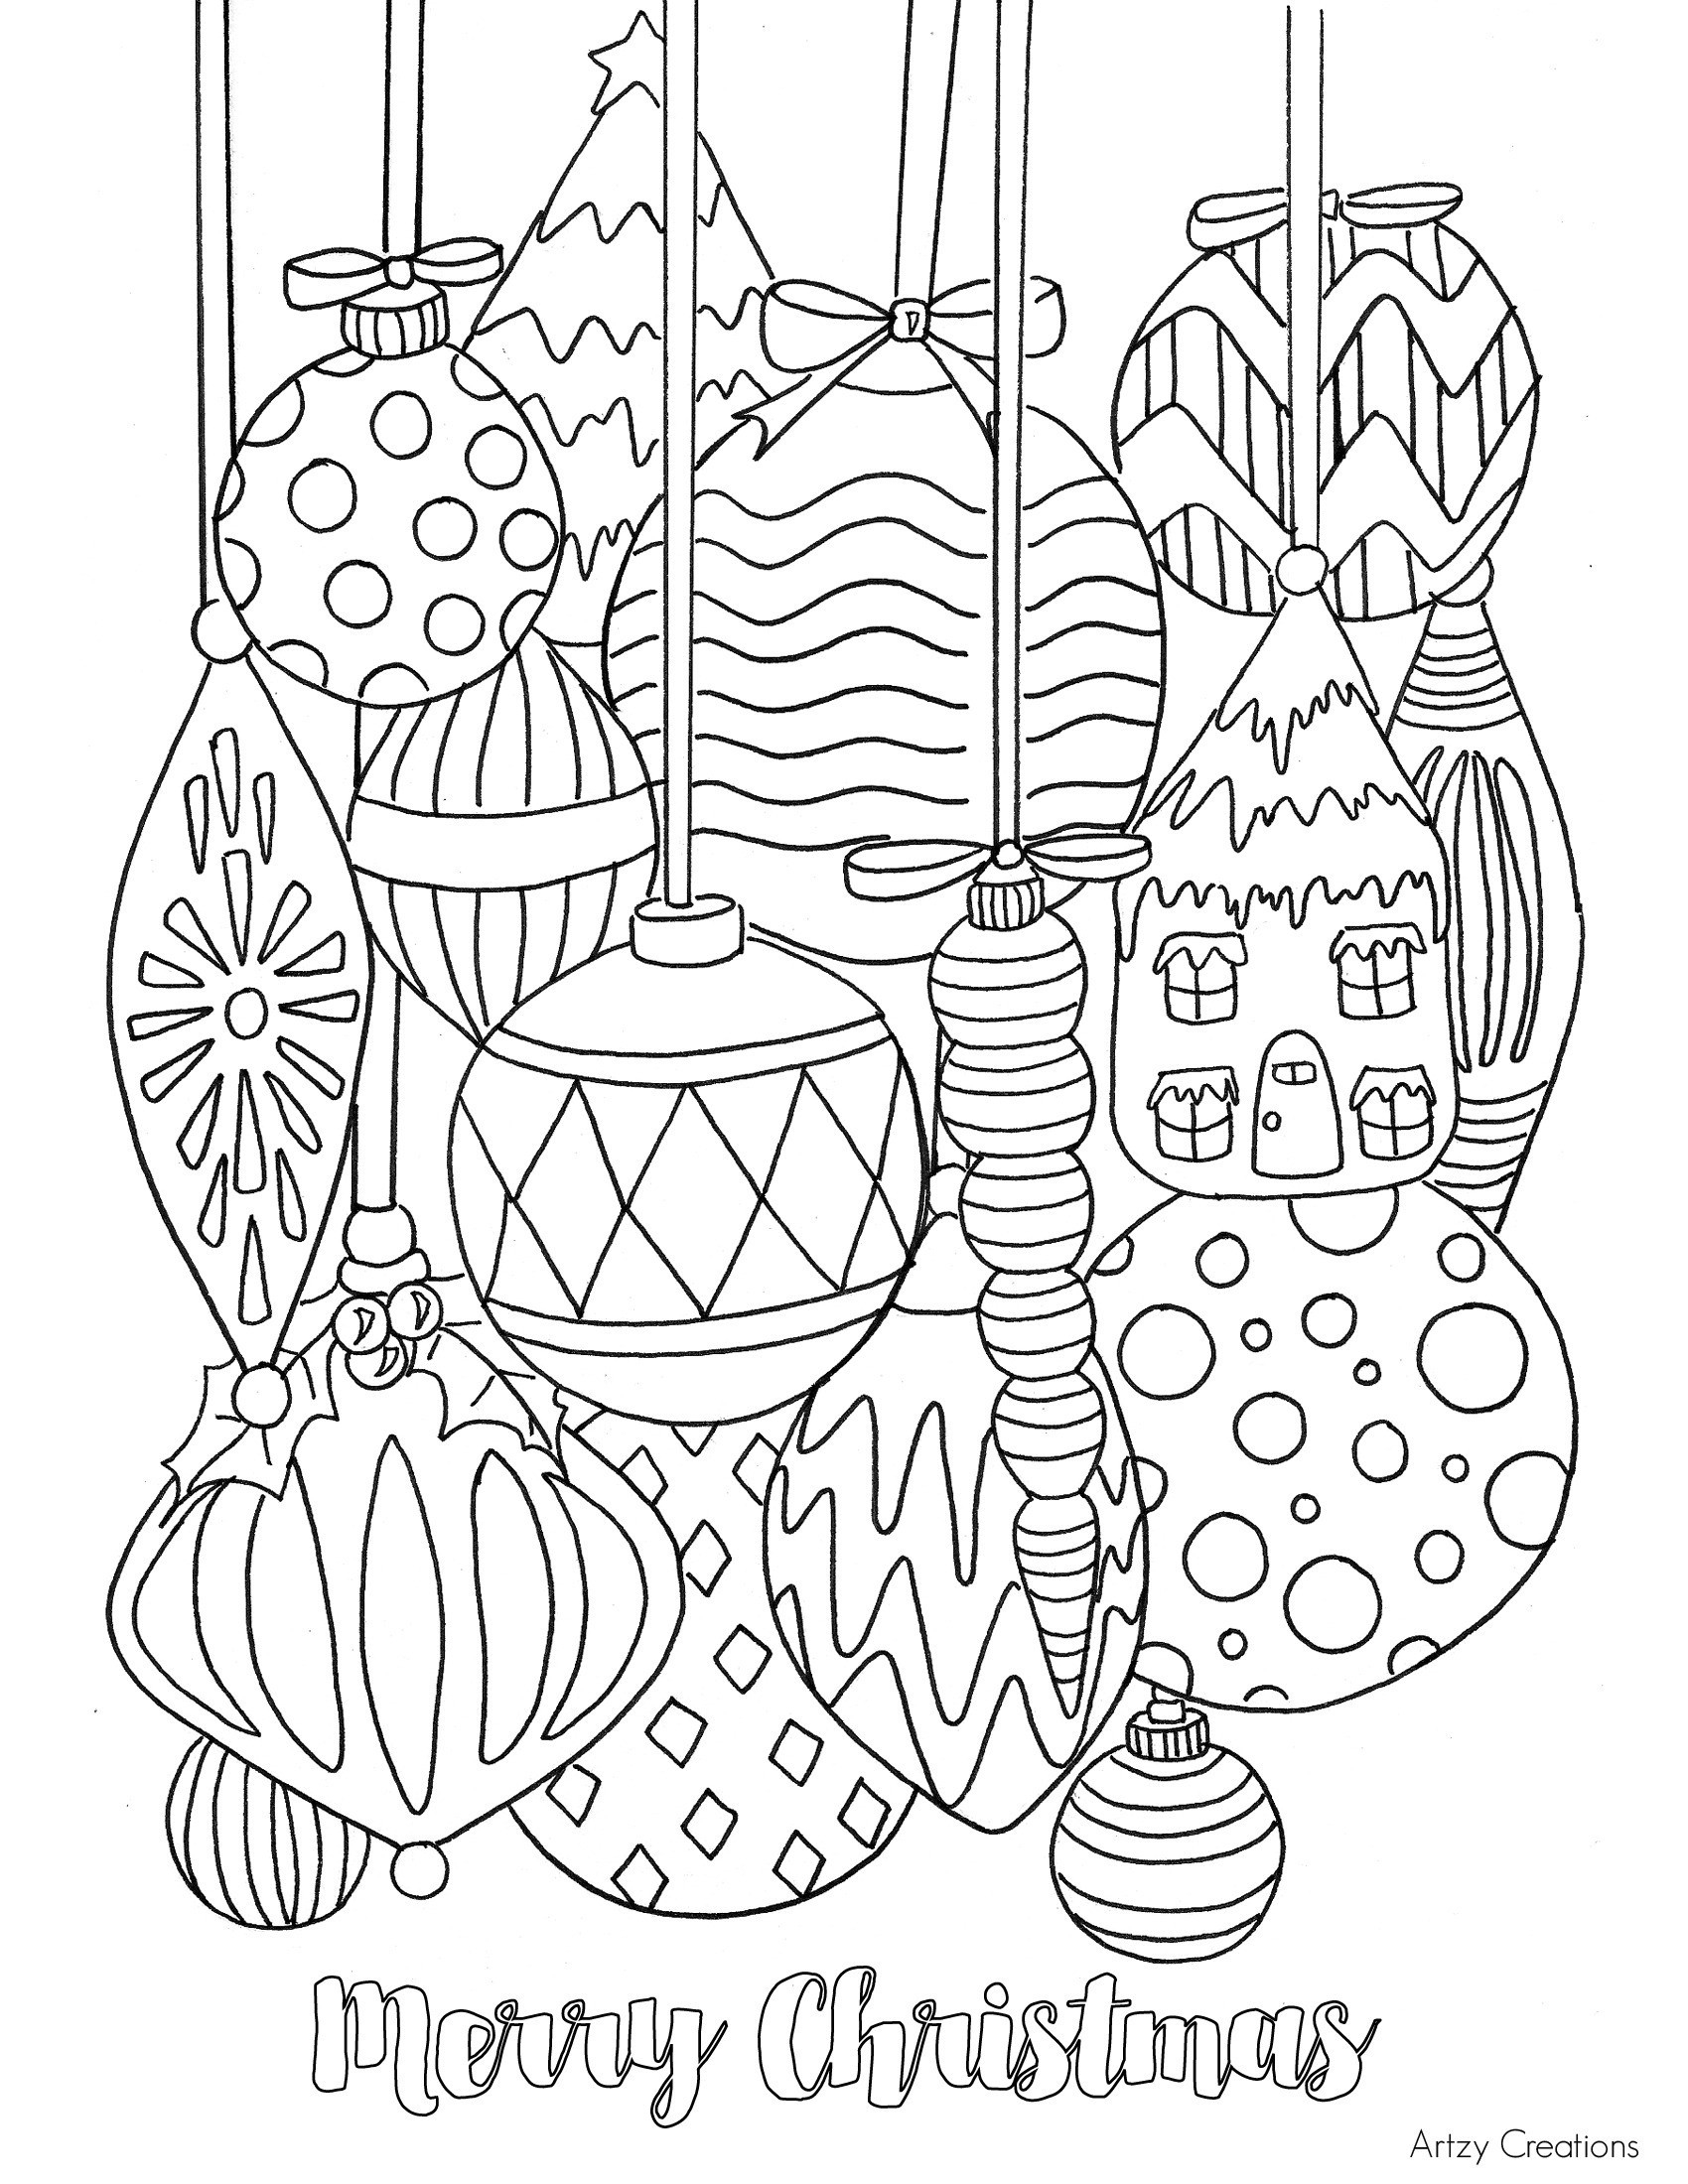 Nativity Scene Coloring Pages  to Print 4l - Free For Children